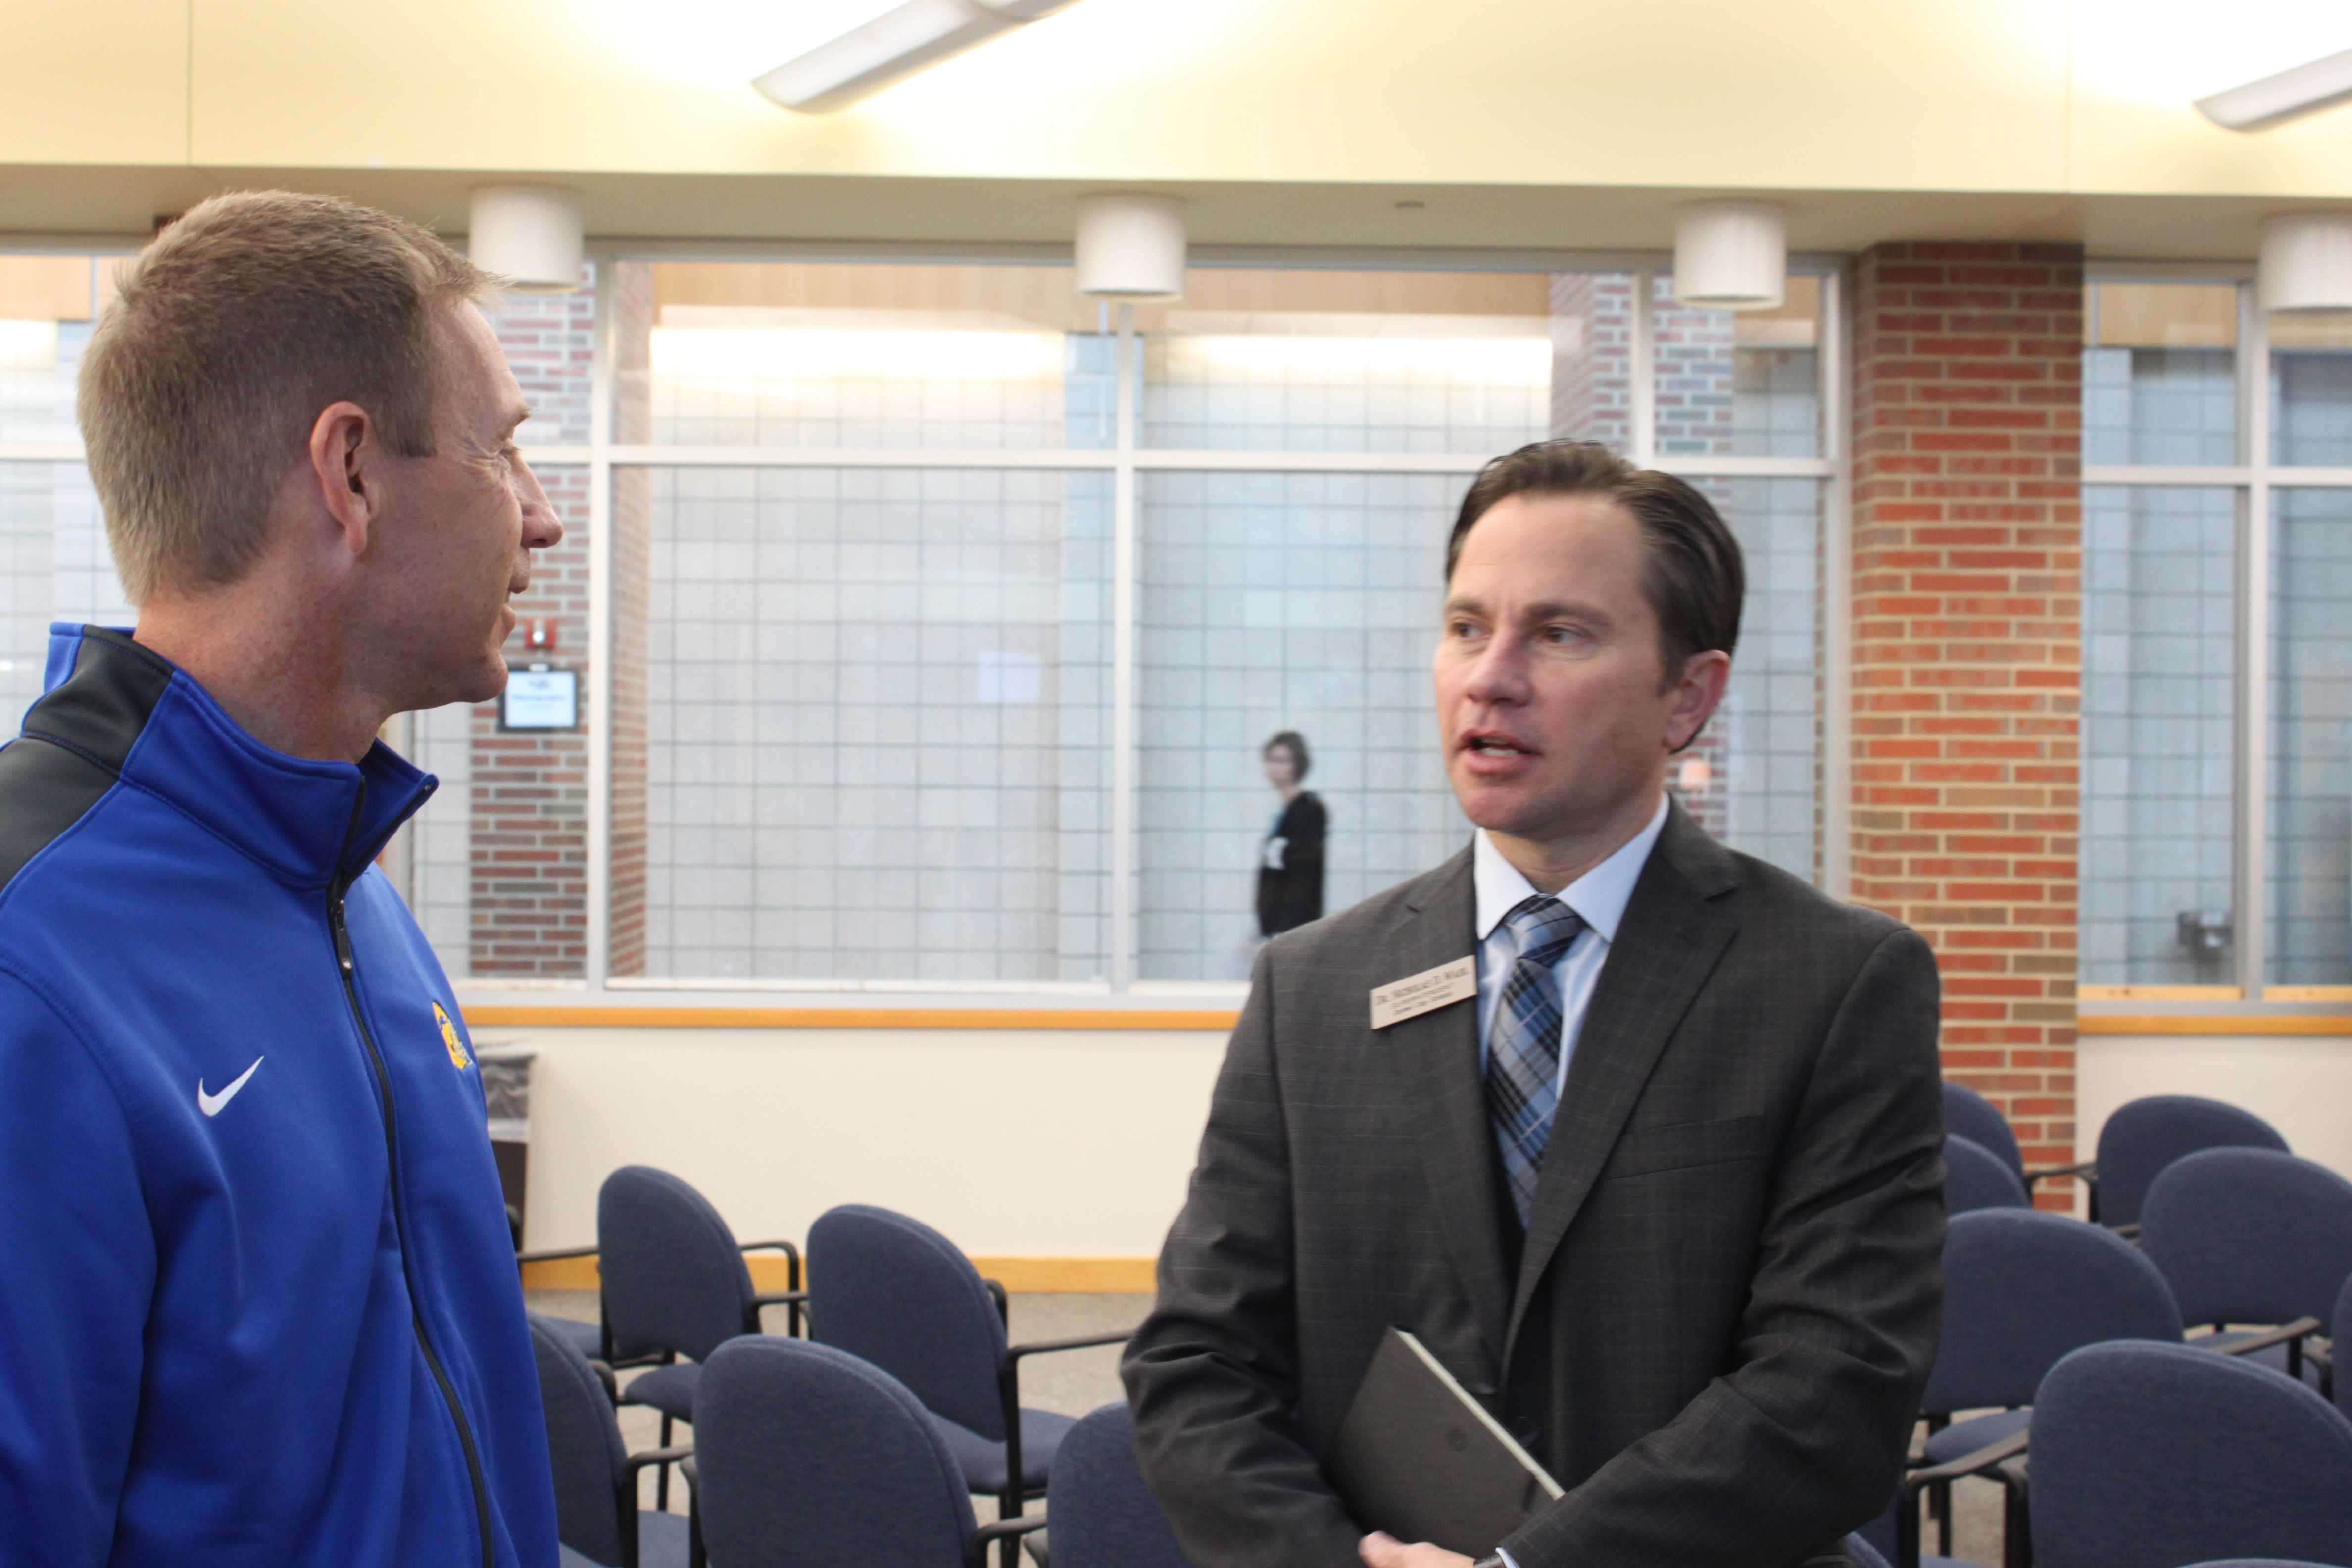 Superintendent Nicholas Wahl speaks to Kevin Wright, head coach of the football team, after a teacher award ceremony that took place on Nov. 1. Wahl said he hopes to increase communication with teachers, parents and students across the district. JOSEPH LEE / PHOTO